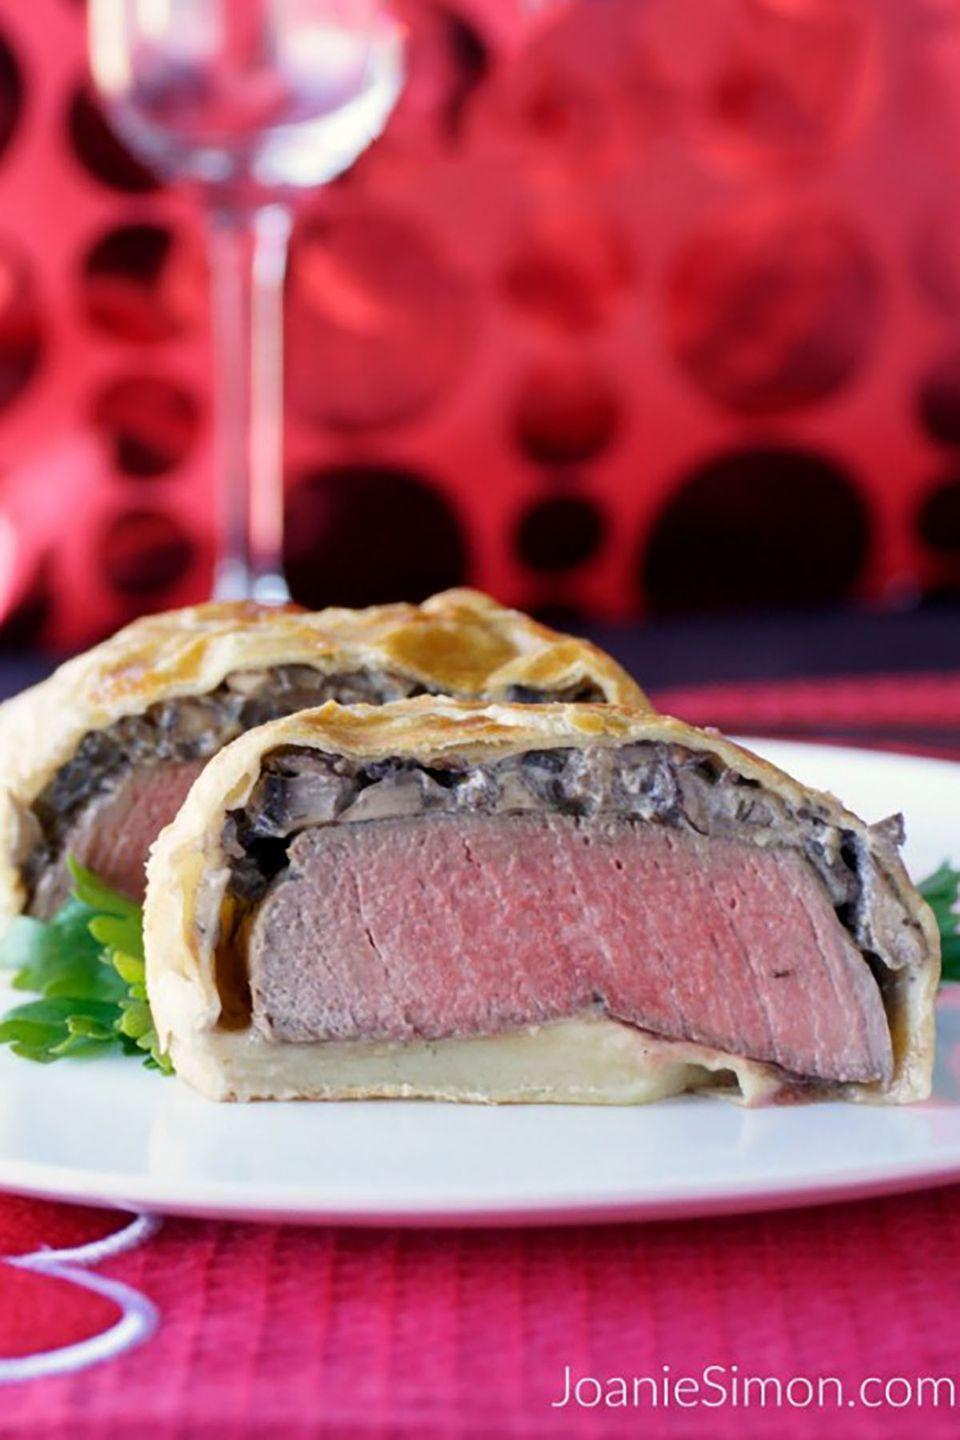 """<p>Puff pastry covers filet mignon and a thin layer of mushroom ragout in this elegant meal for two.</p><p><span><strong>Get the recipe at <a href=""""http://joaniesimon.com/beef-wellington-for-two/"""" rel=""""nofollow noopener"""" target=""""_blank"""" data-ylk=""""slk:Joanie Simon"""" class=""""link rapid-noclick-resp"""">Joanie Simon</a>.</strong></span></p>"""